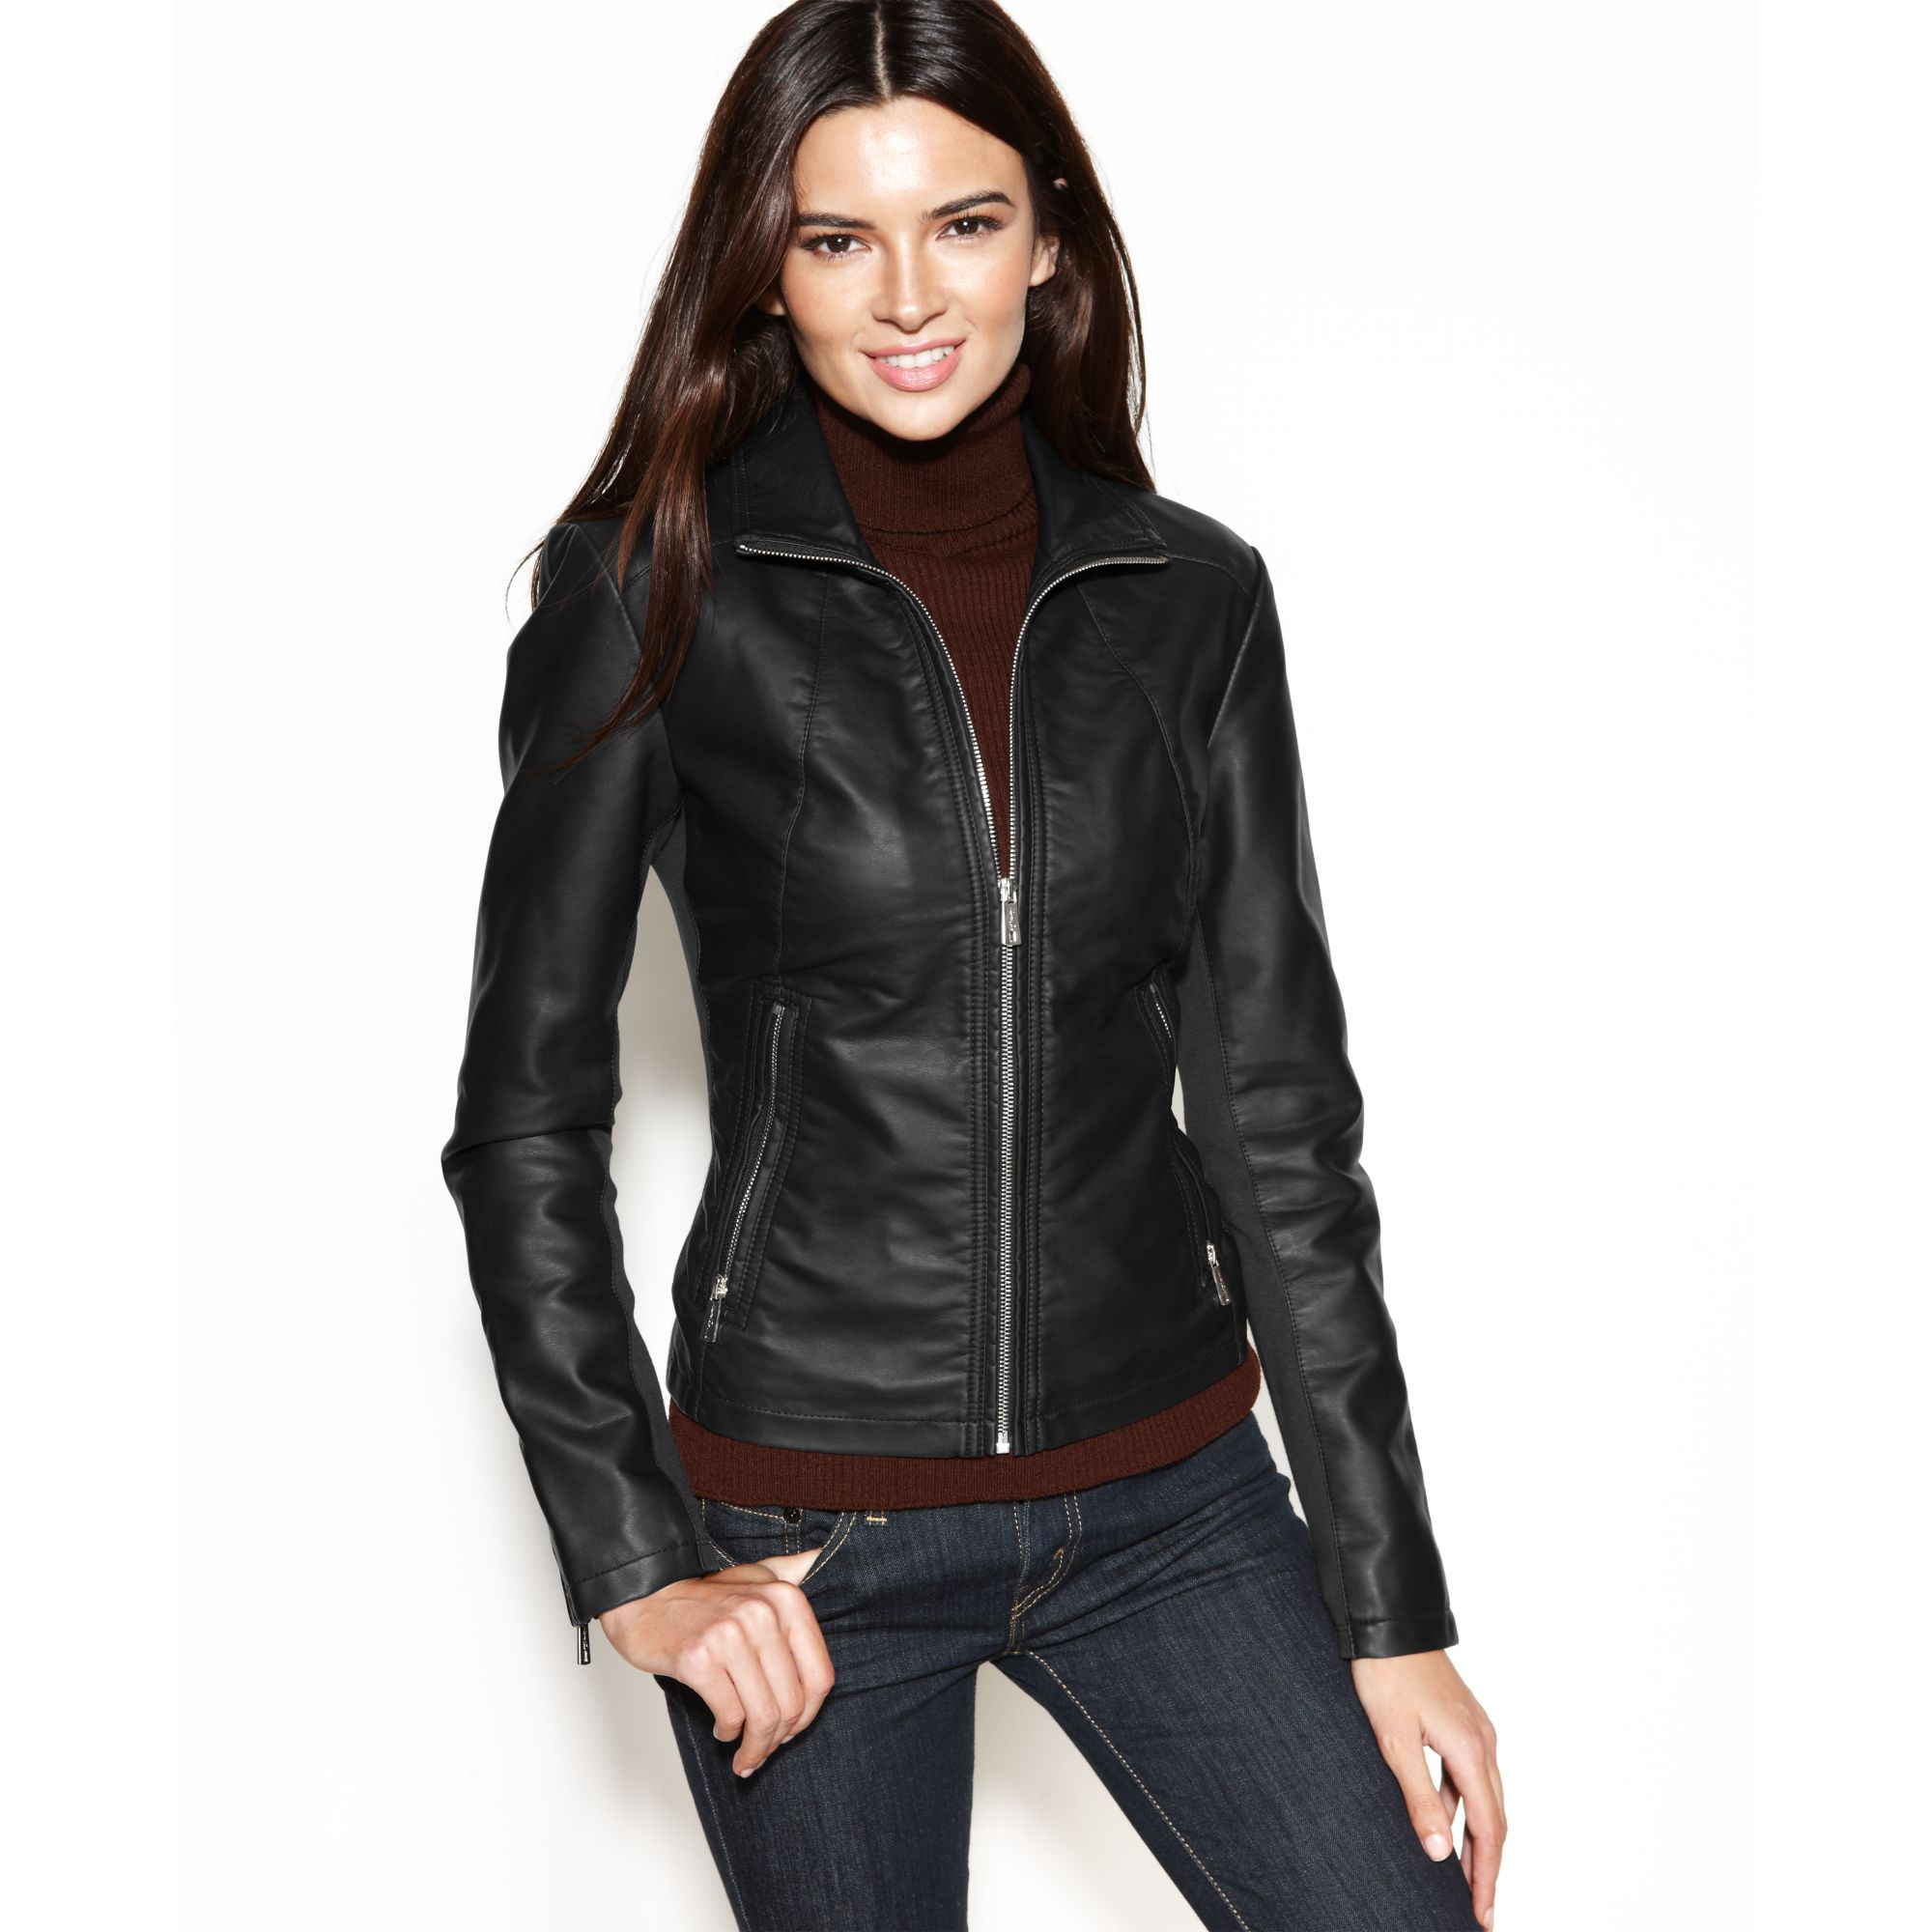 Images of Faux Leather Jacket For Women - Watch Out, There's a ...